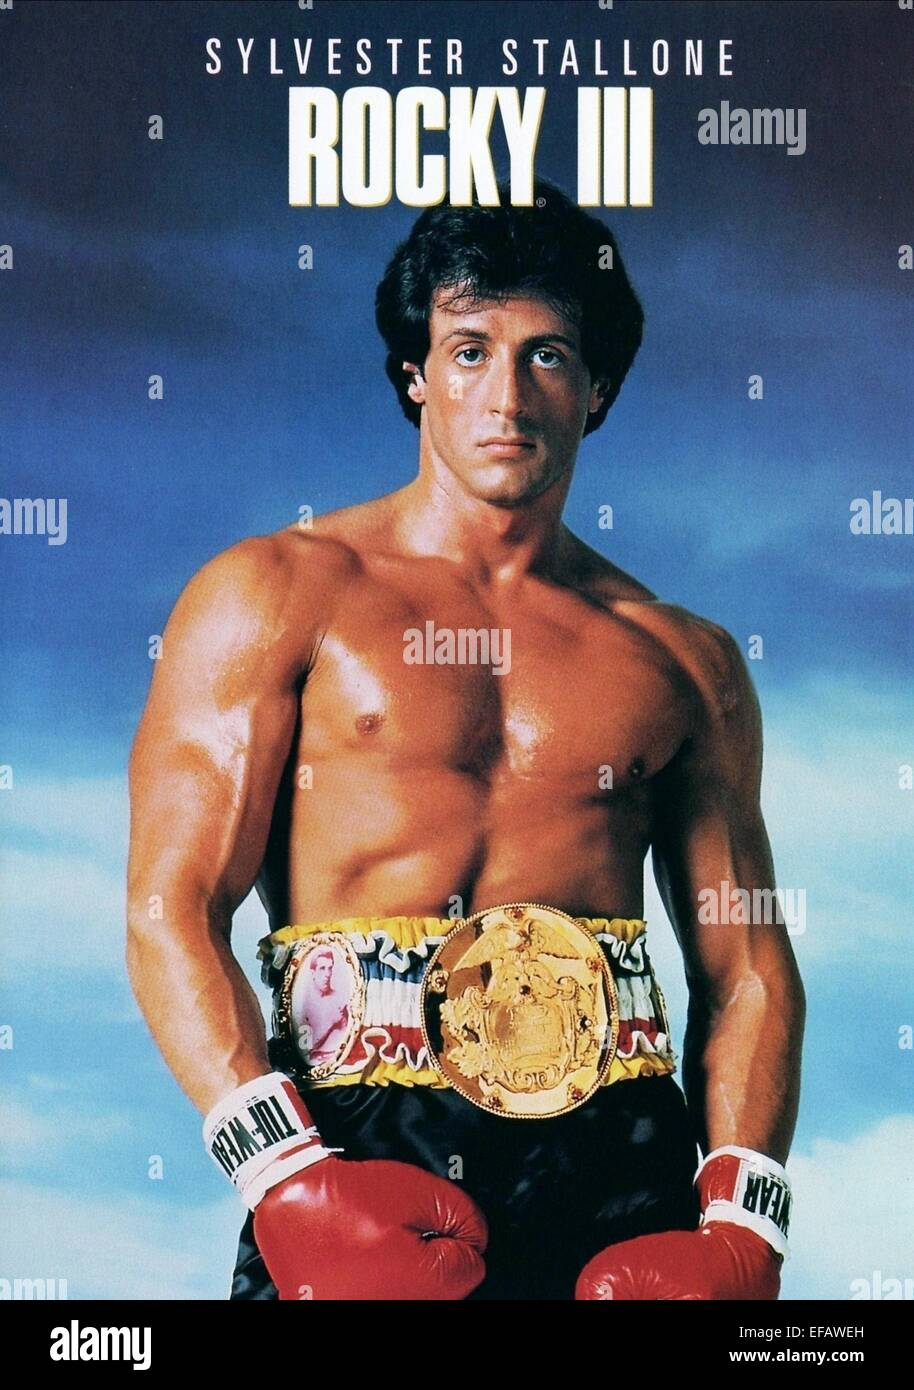 sylvester stallone poster rocky iii 1982 stock photo. Black Bedroom Furniture Sets. Home Design Ideas